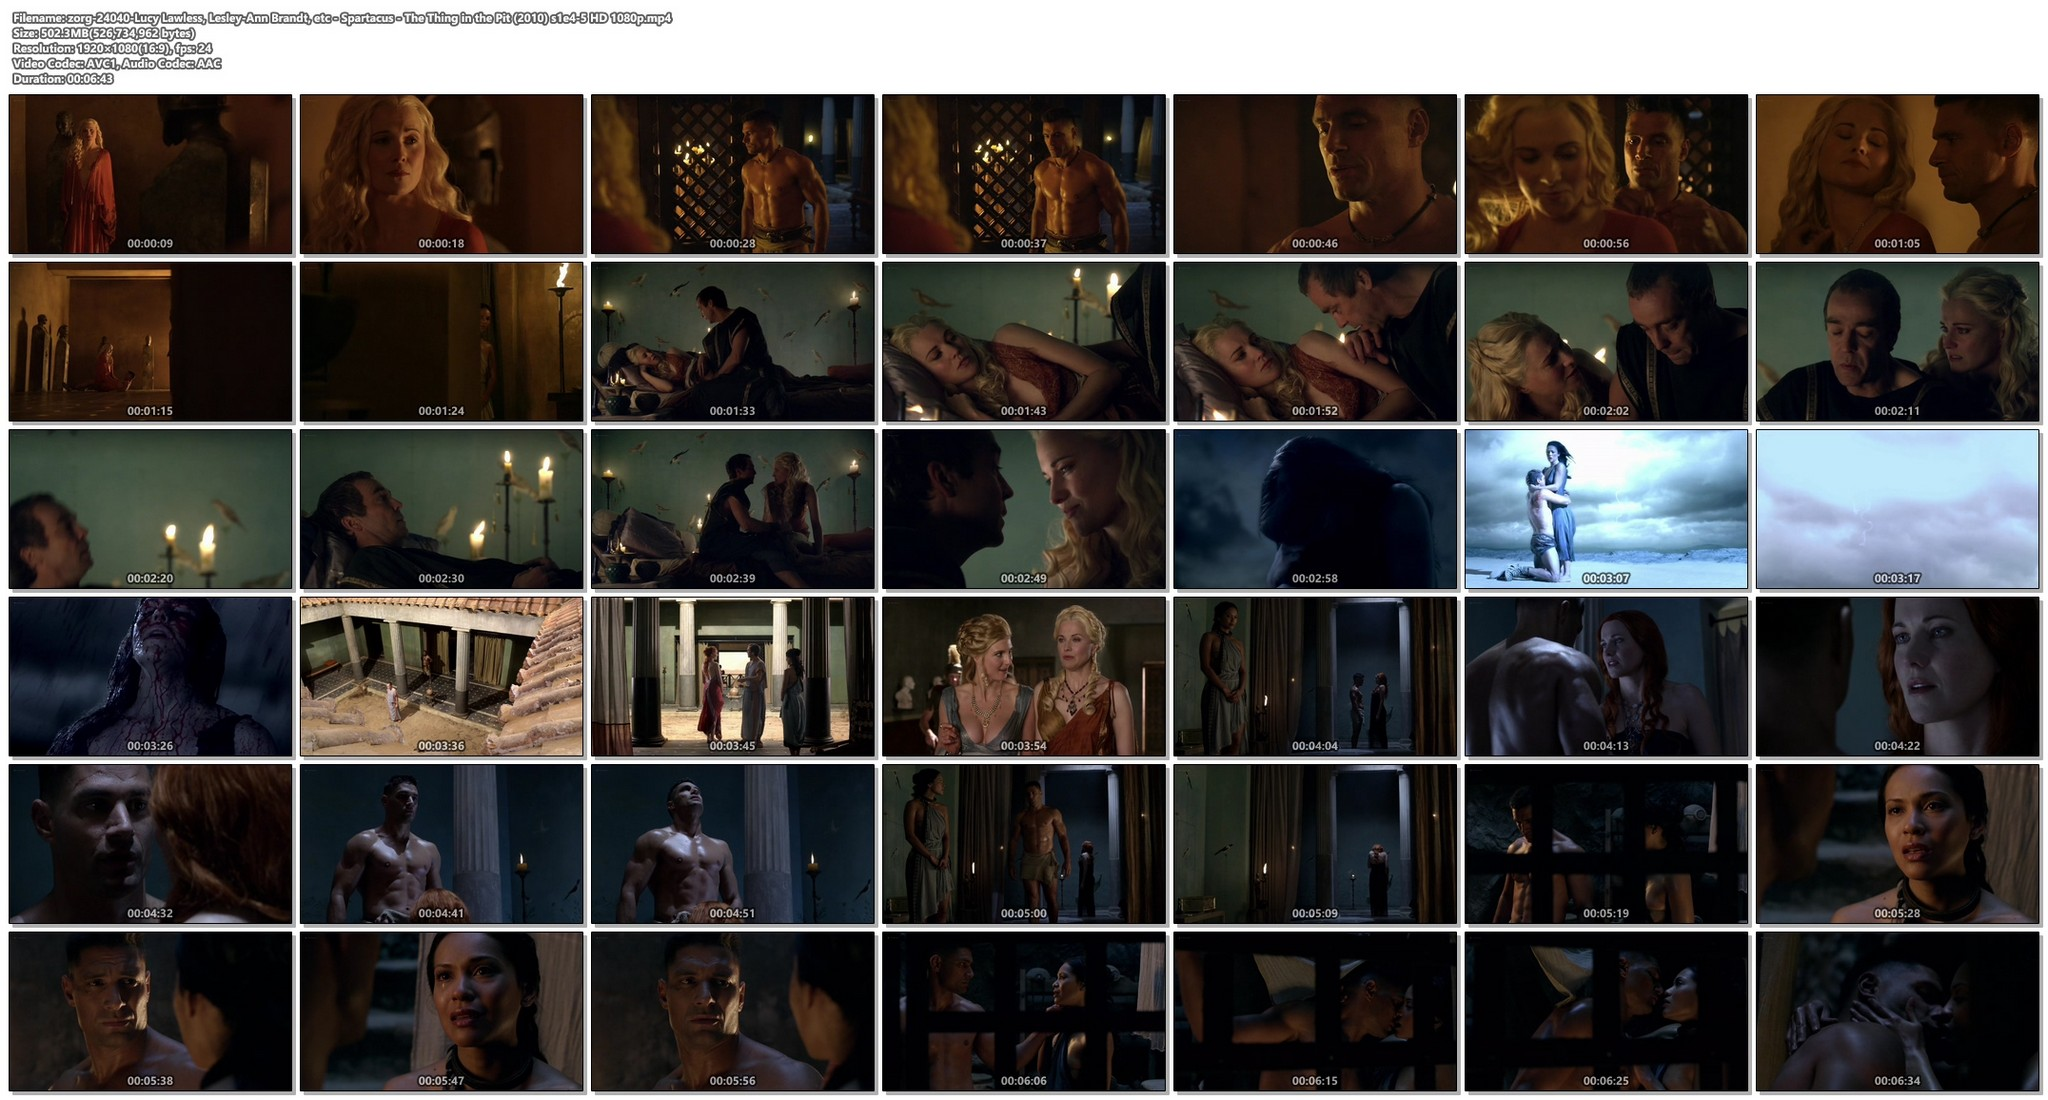 Lucy Lawless hot sex oral Lesley-Ann Brandt and others sexy - Spartacus - The Thing in the Pit (2010) s1e4-5 HD 1080p (1)